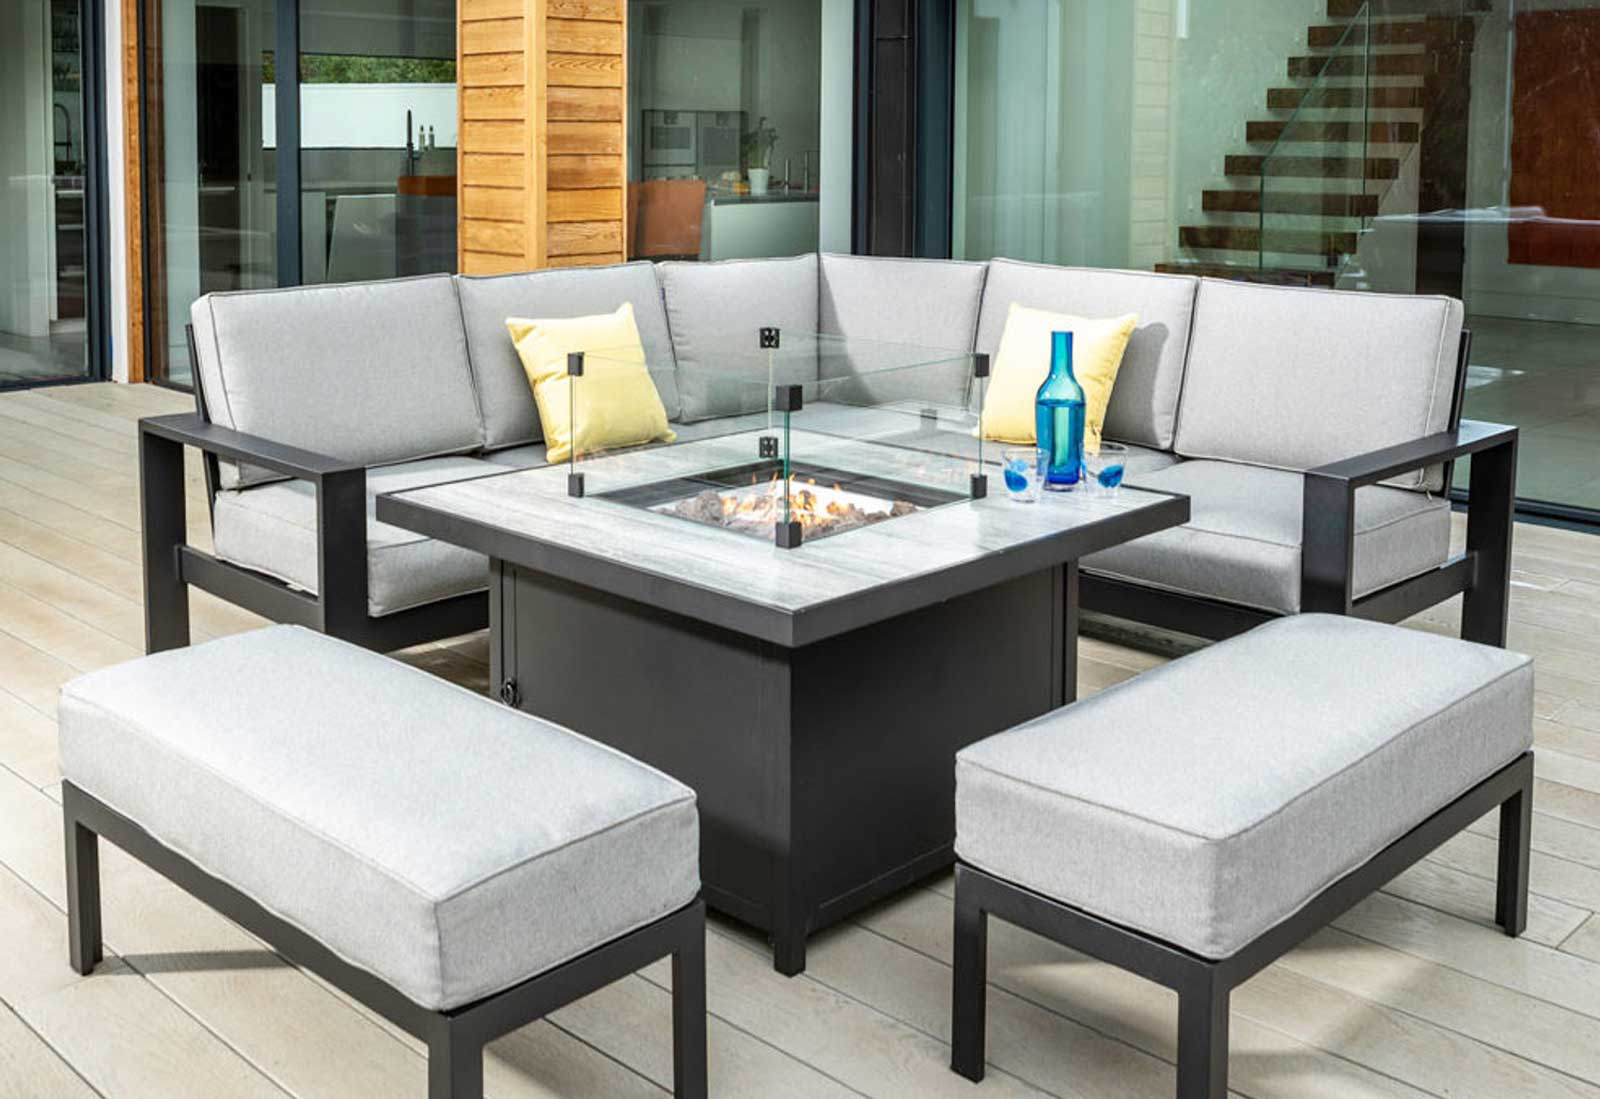 Make The Most Of Your Home's Outdoor Spaces In 2021